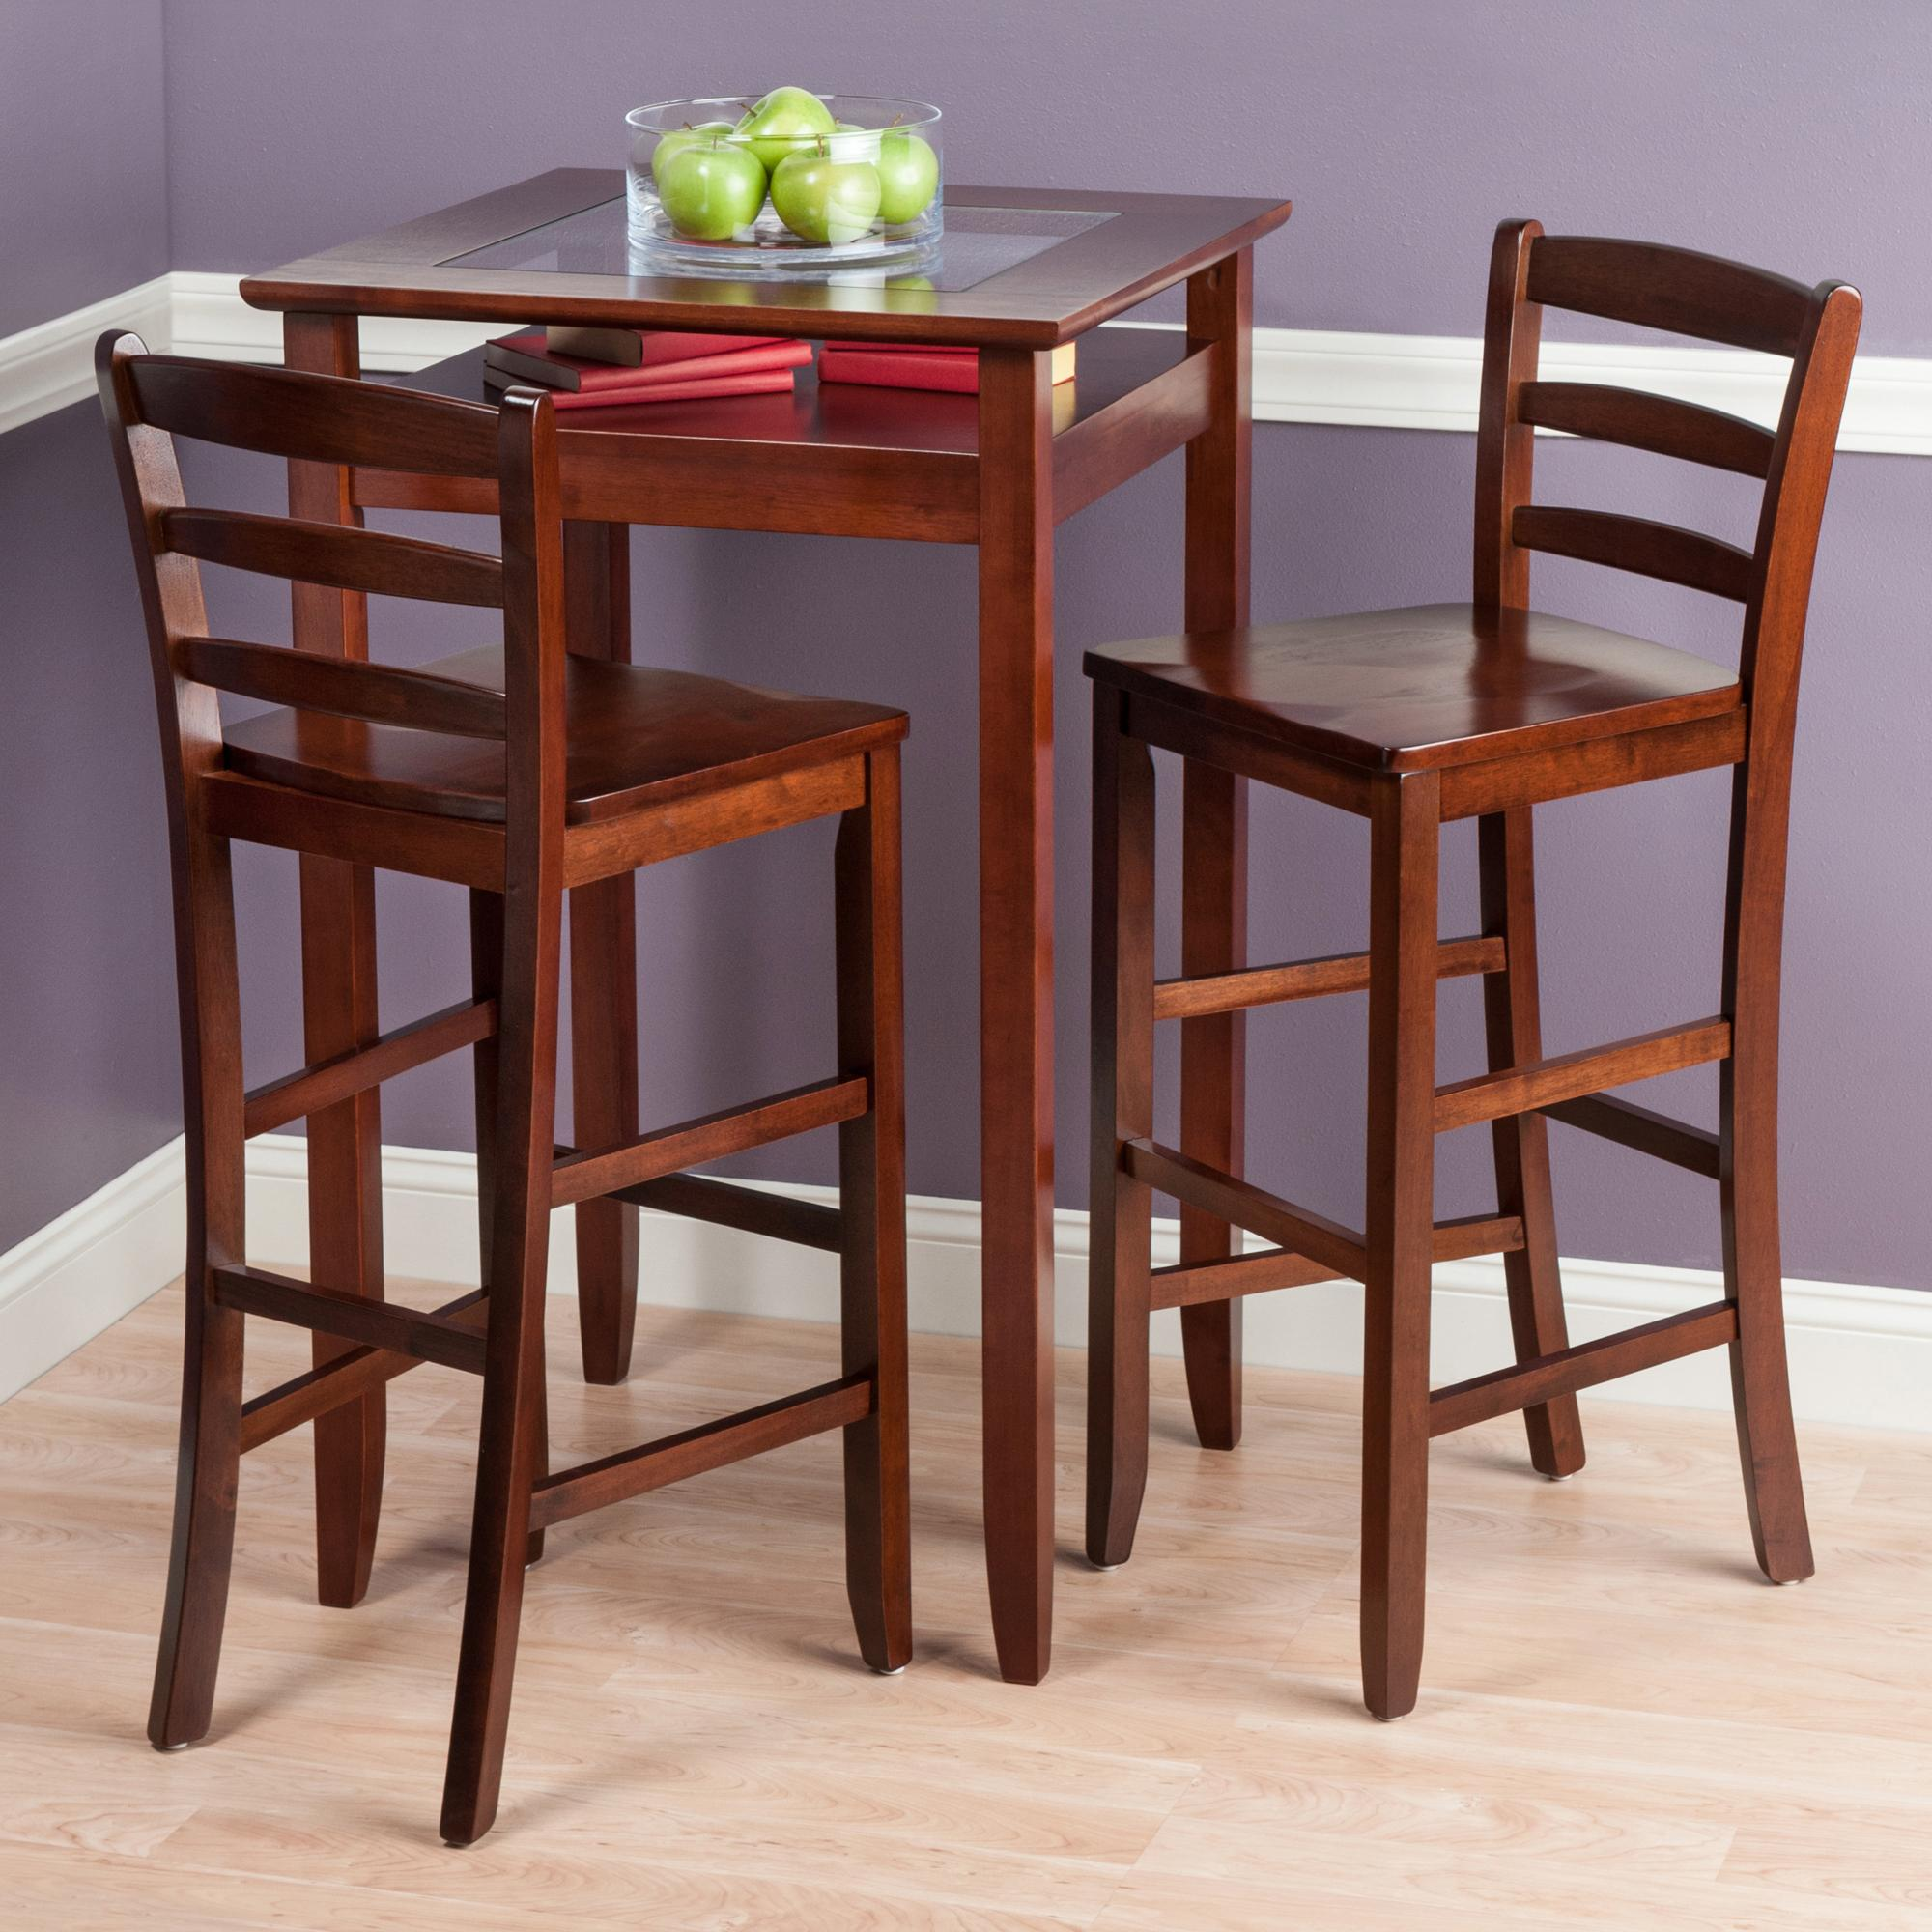 Amazon.com: Winsome Wood Halo 3 Piece Pub Table Set with 2 Ladder ...